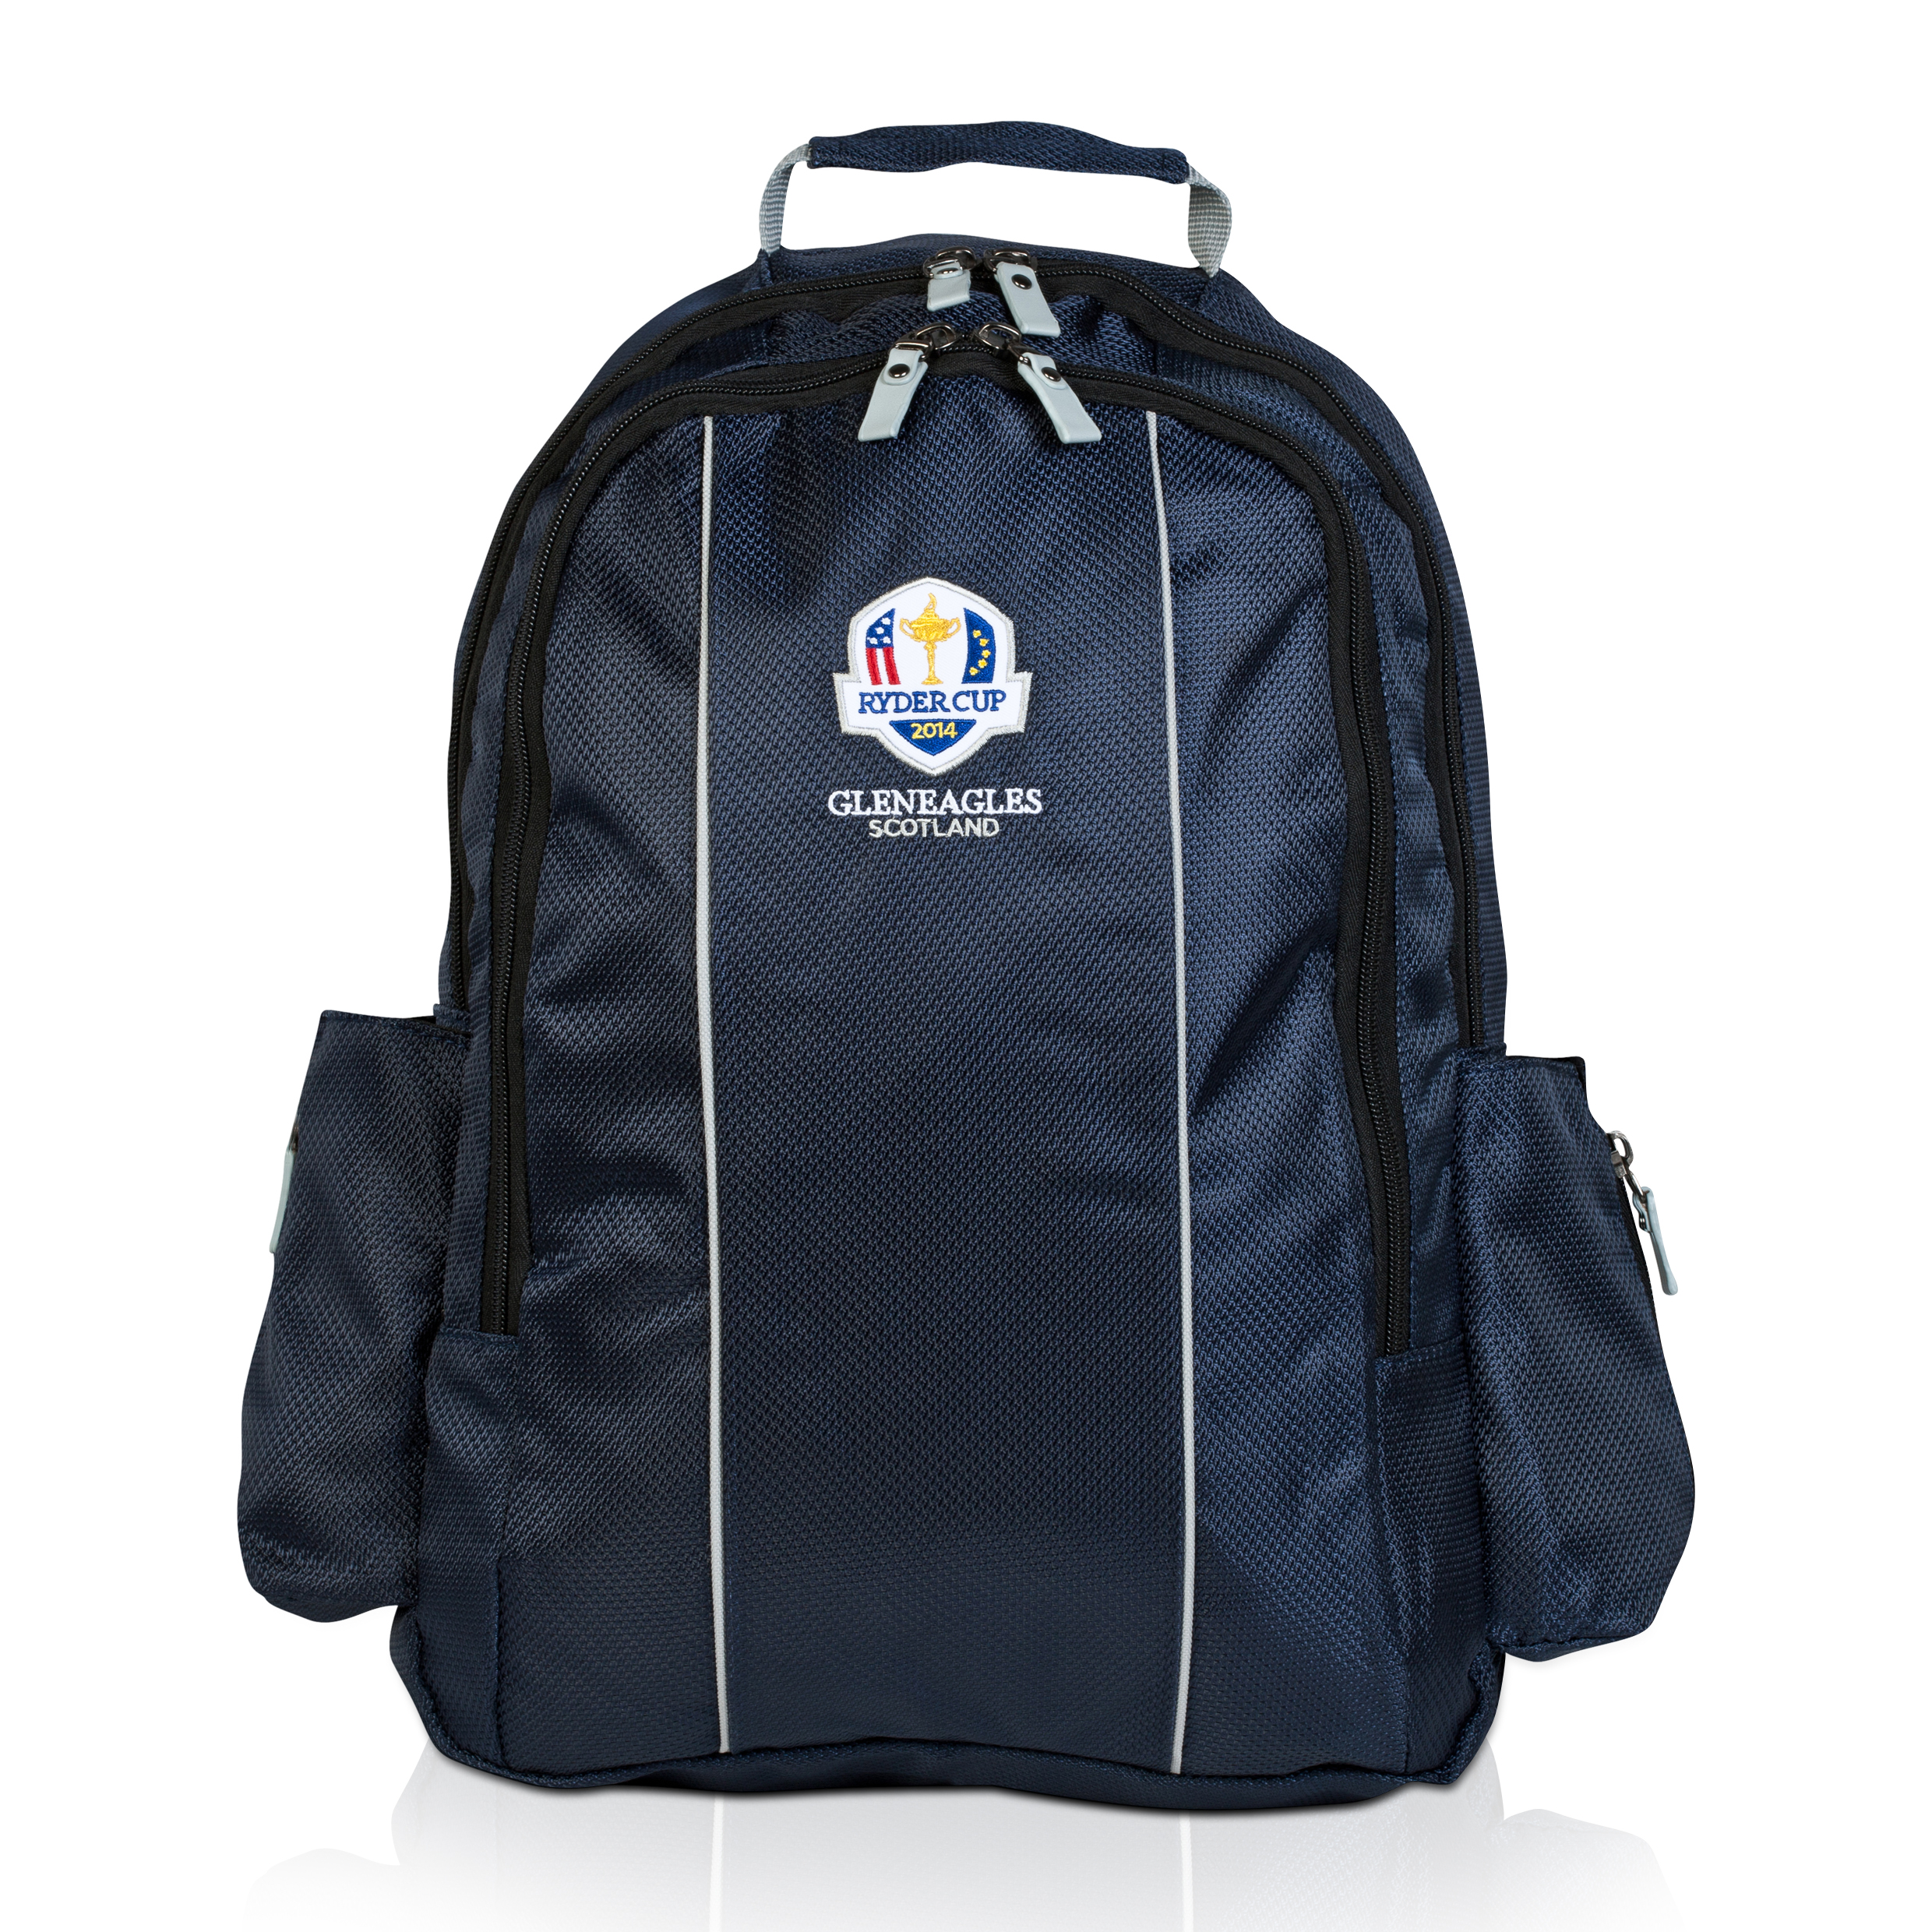 The 2014 Ryder Cup Nylon Rucksack